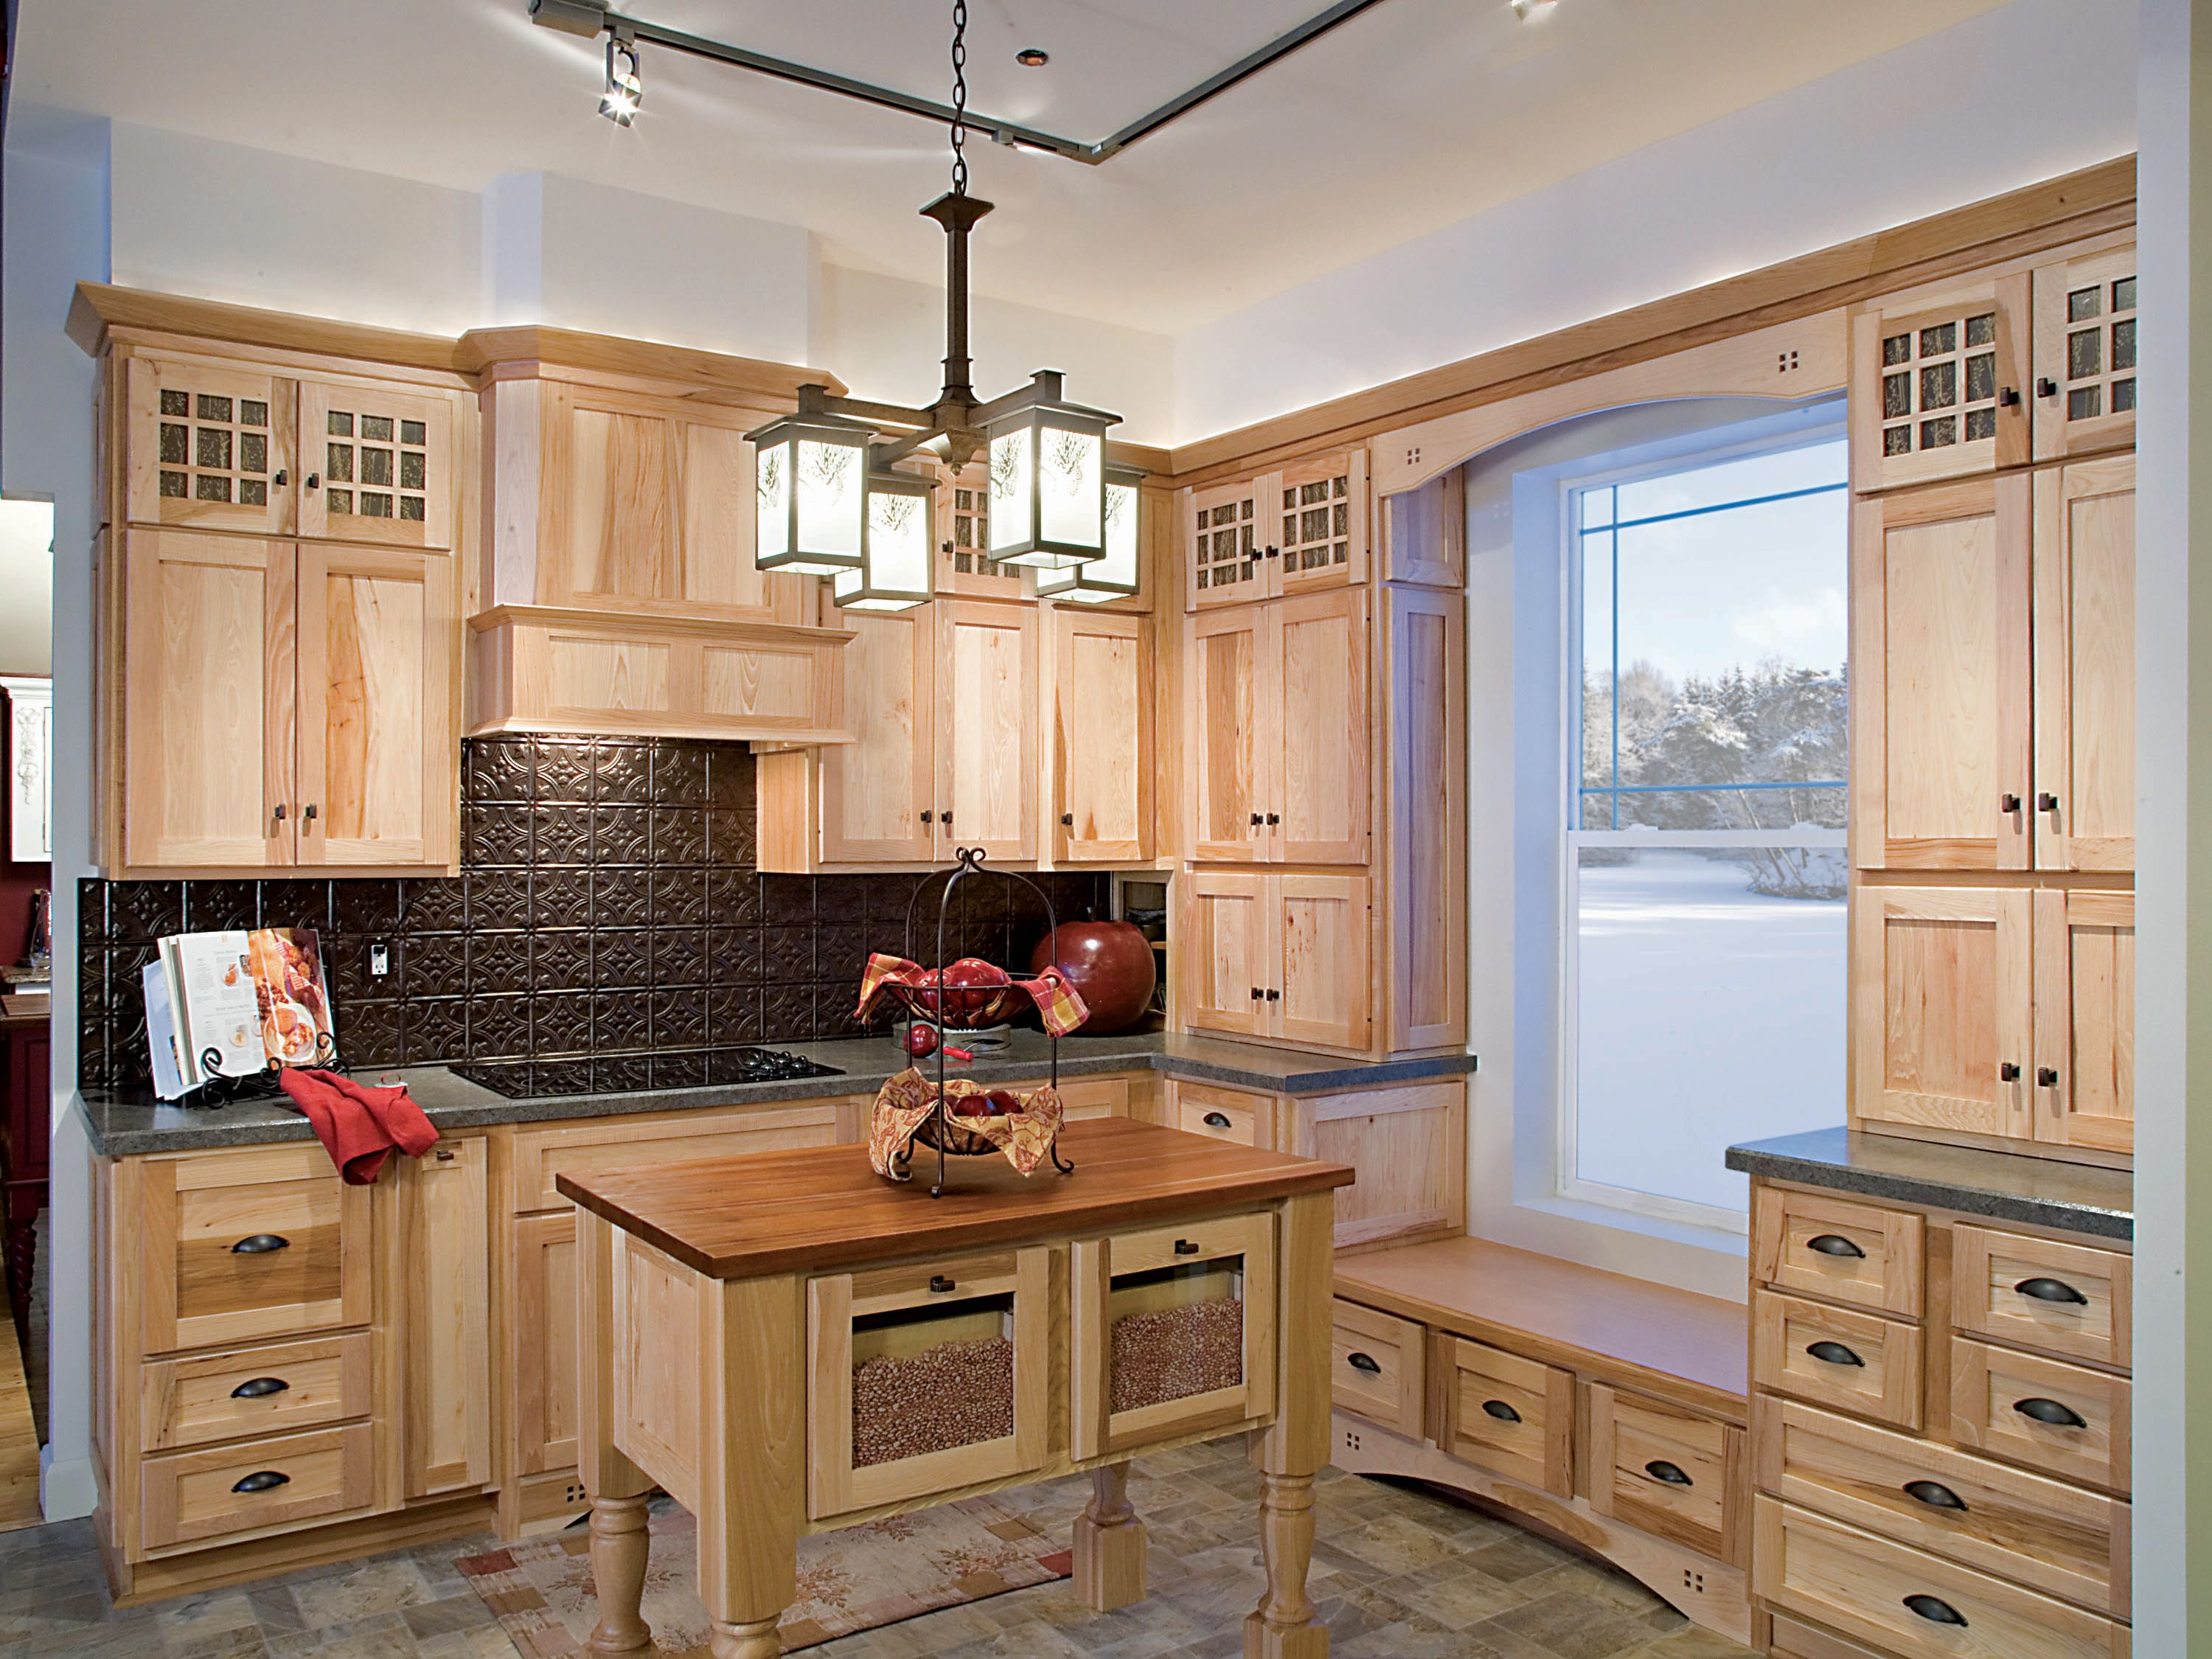 Candlelight Cabinetry Natural Hickory Shaker Door Candlelight Cabinetry Cabinetry Wood Kitchen